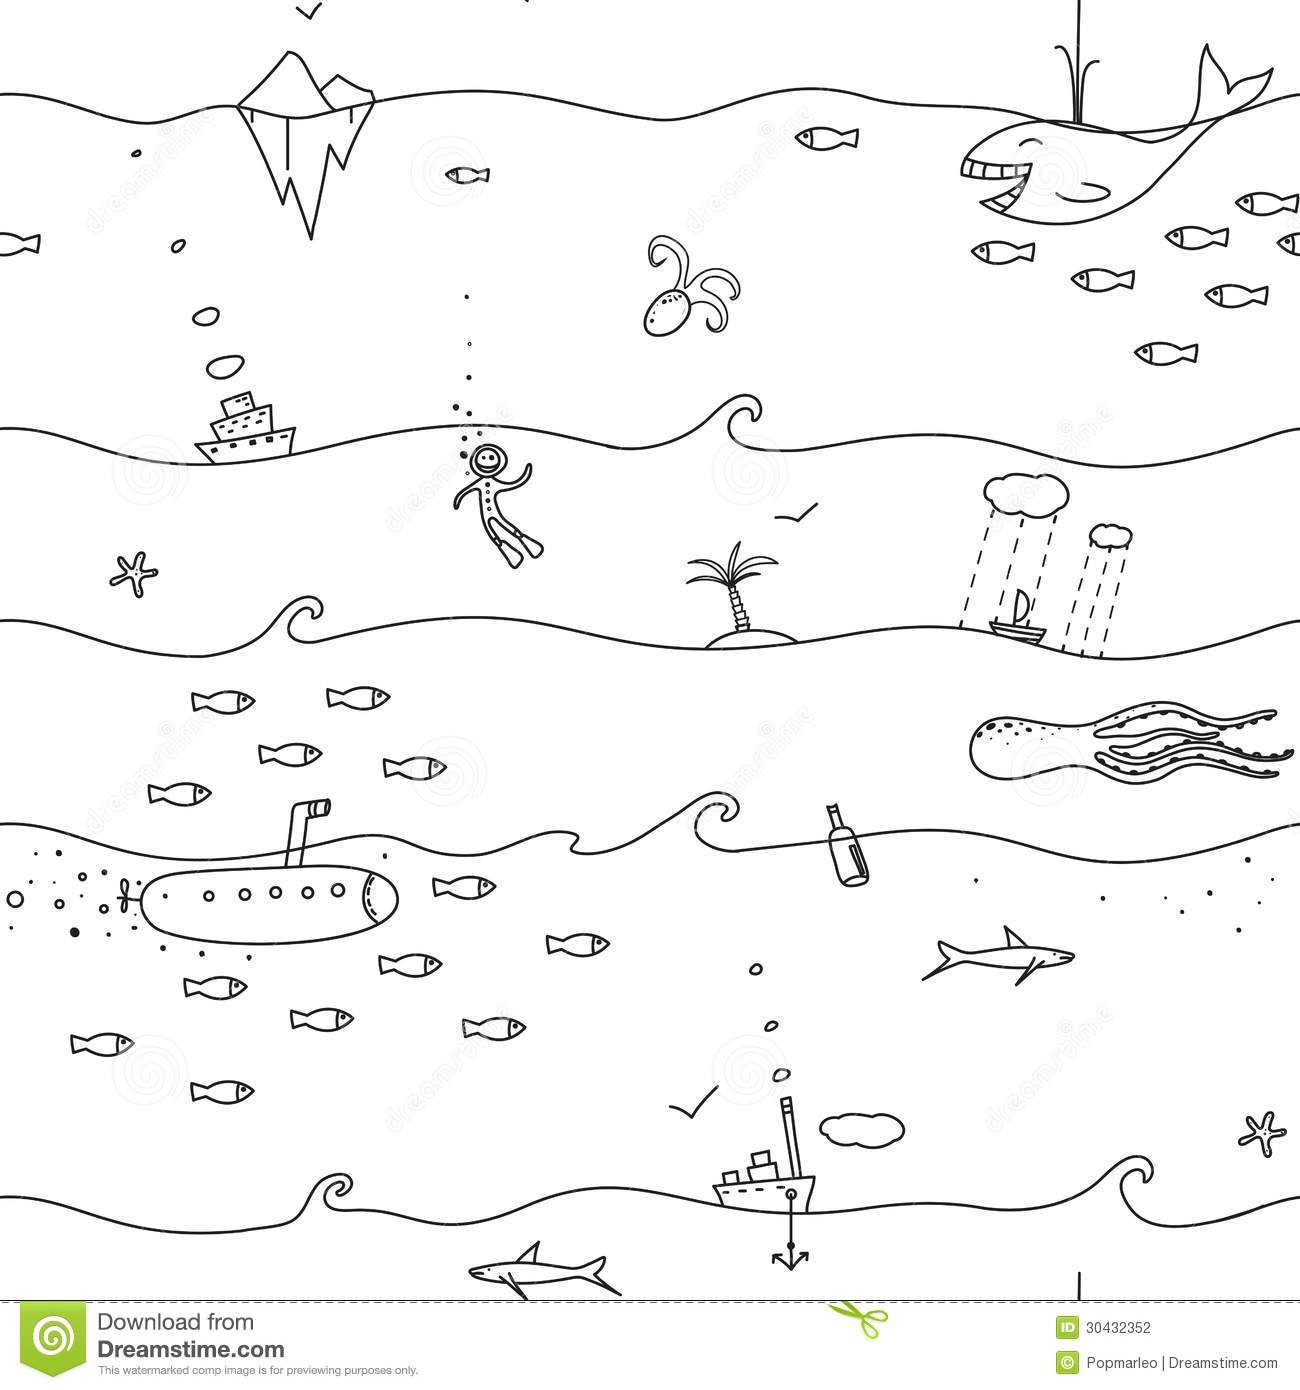 Underwater clipart black and white.